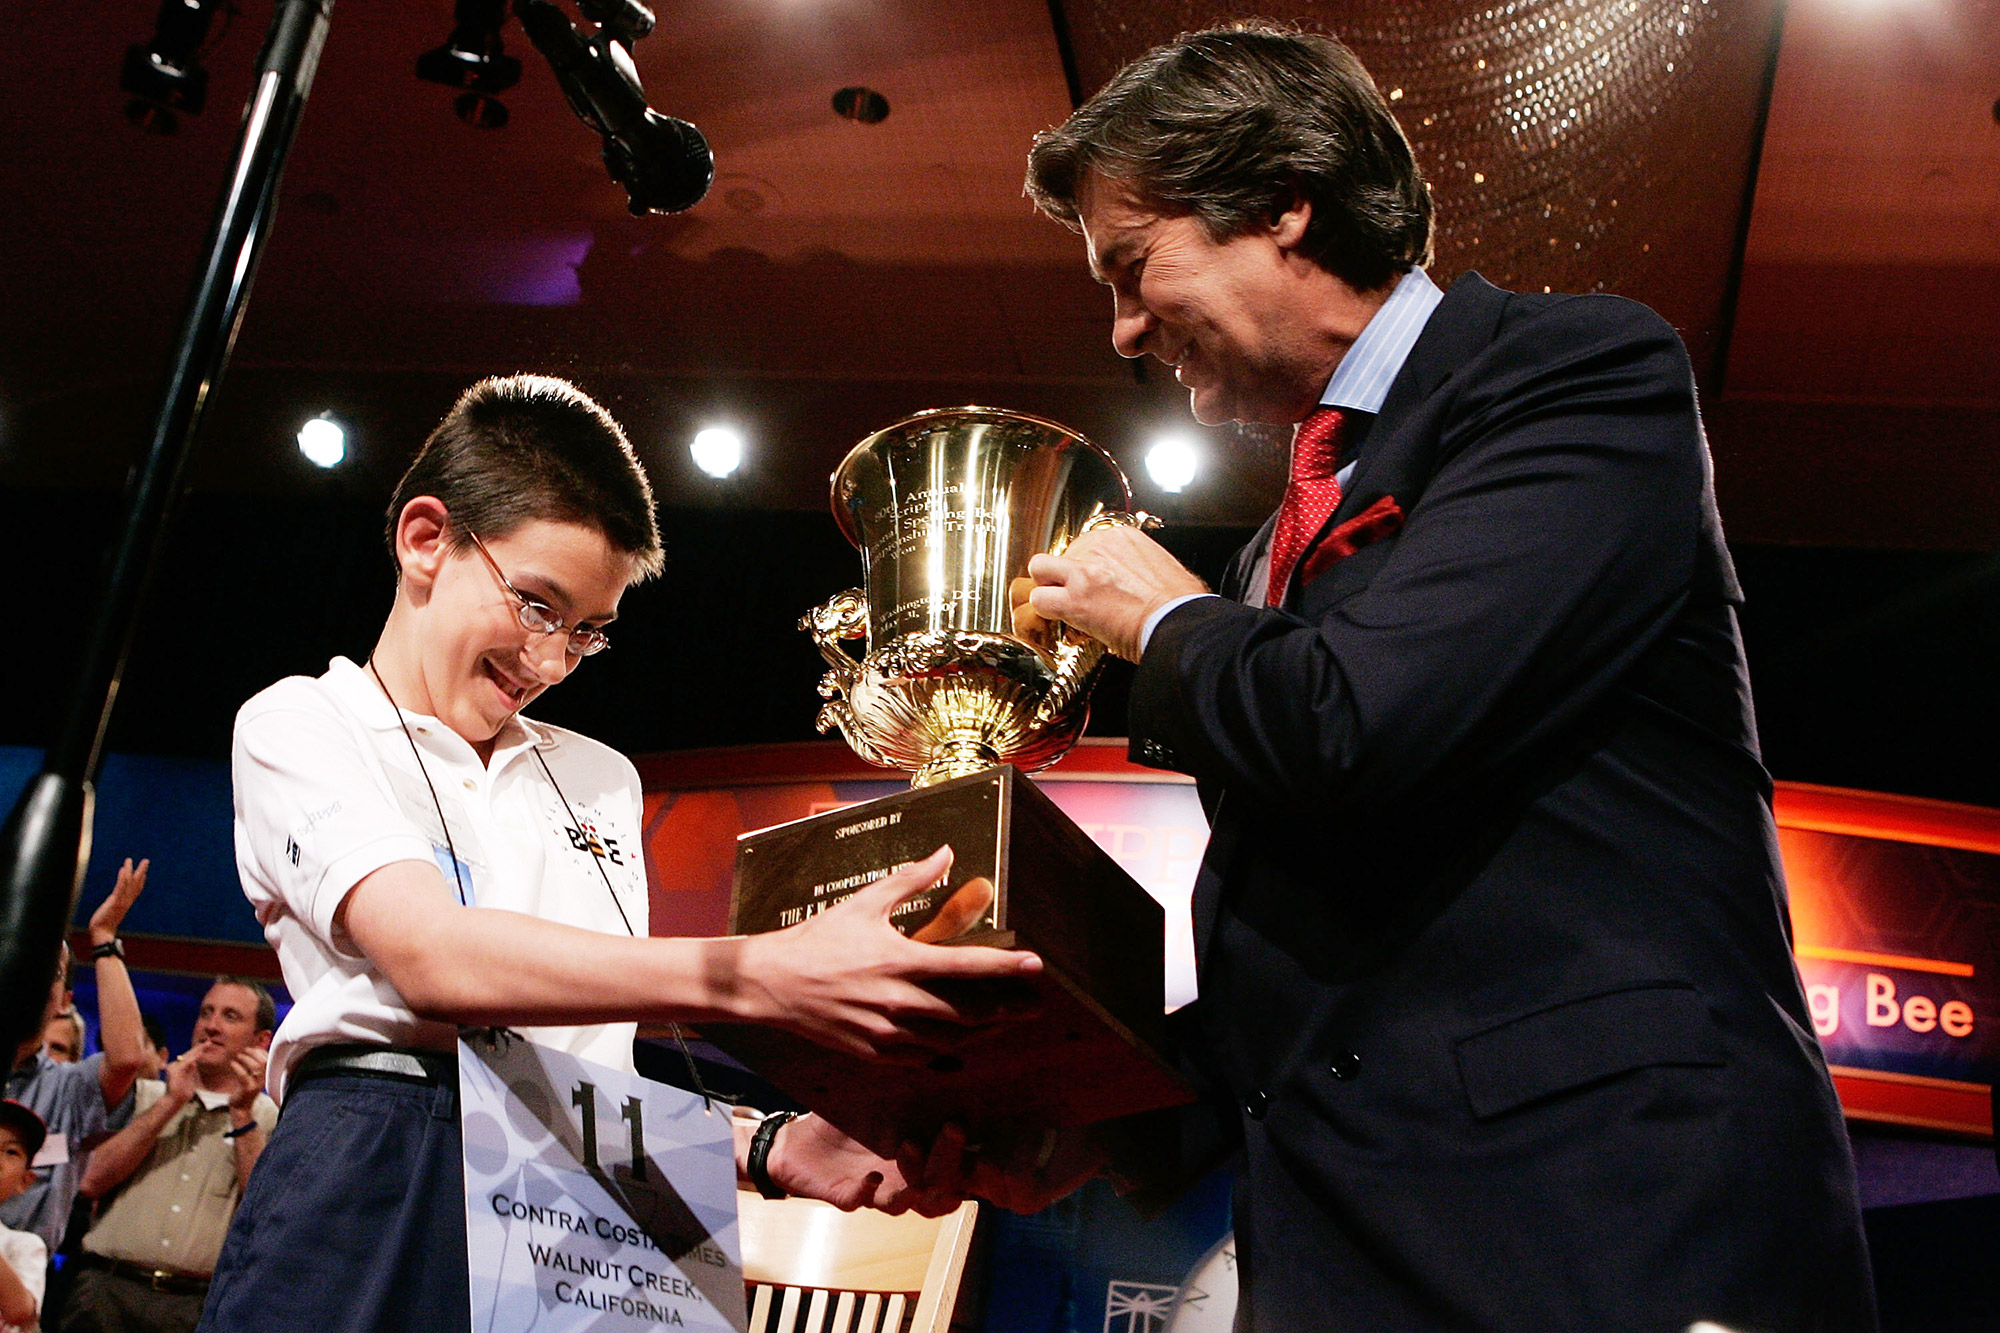 Speller Evan O'Dorney (L) of Danville, California, receives a trophy from Kenneth Lowe, President and CEO of the E.W. Scripps Company, after O'Dorney won the finals of 2007 Scripps National Spelling Bee May 31, 2007 in Washington, DC